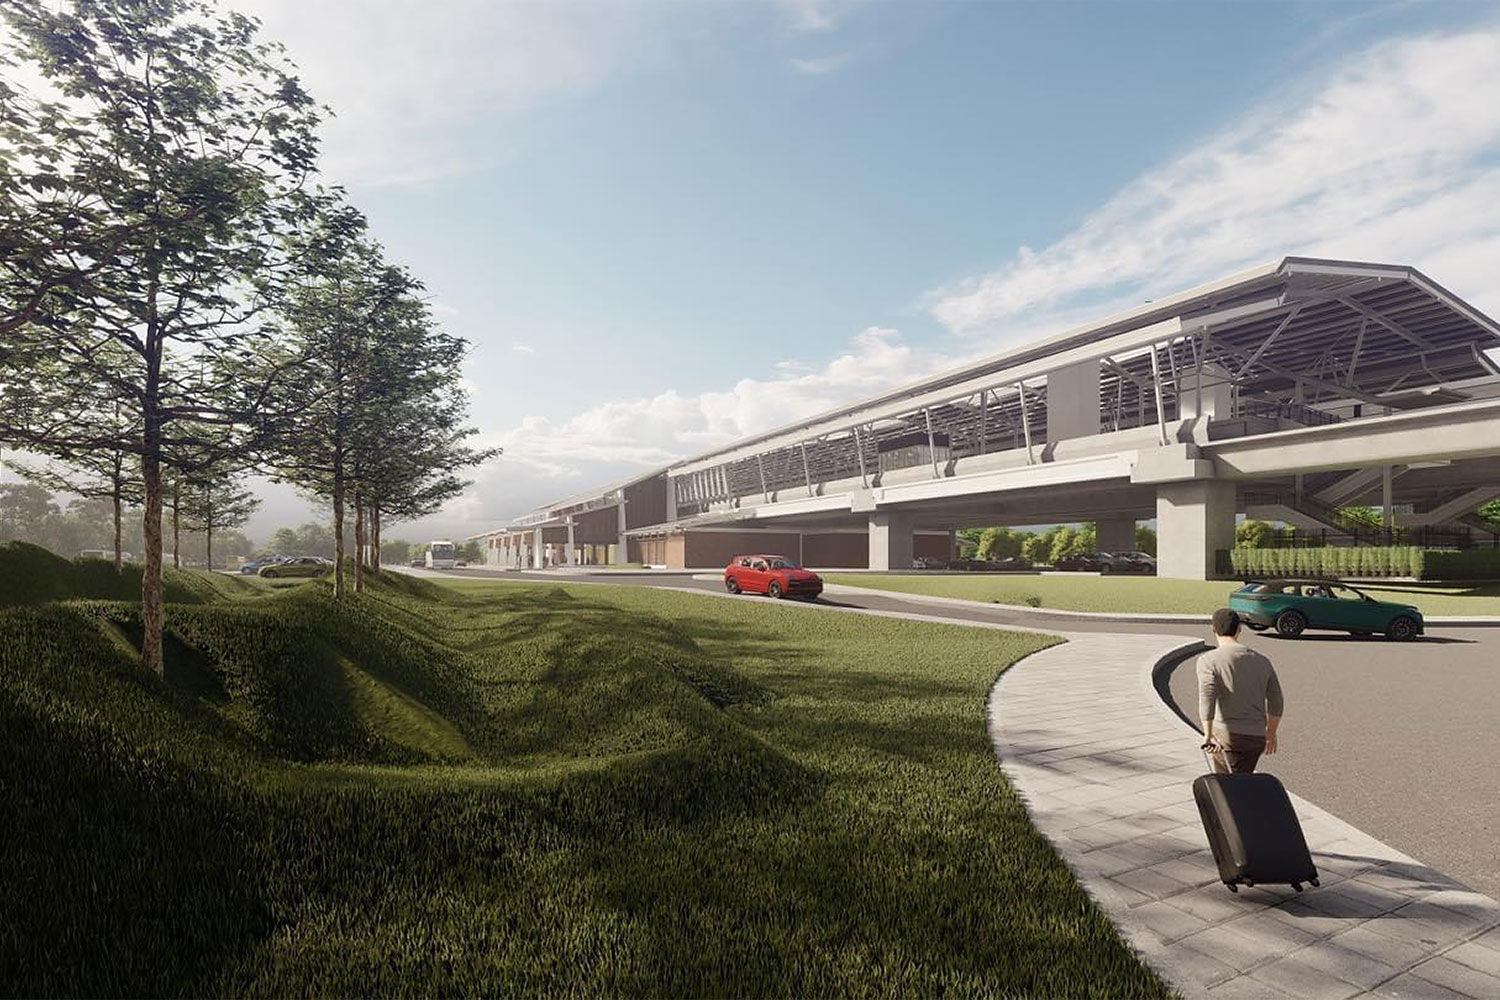 An artist's impression of a stretch of the planned airport rail system linking three airports including U-tapao airport in the Eastern Economic Corridor.